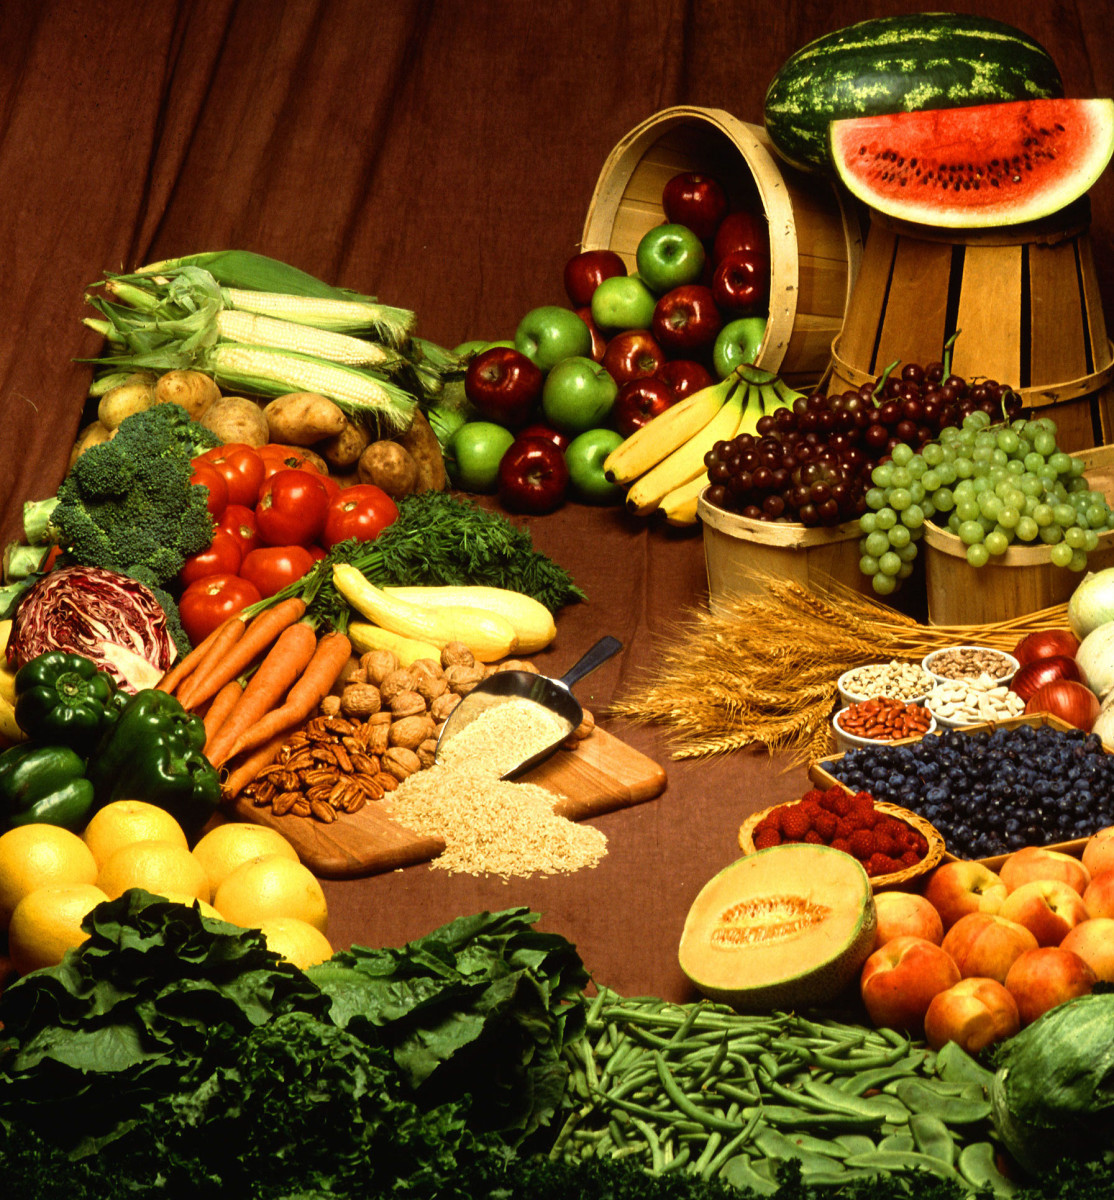 High-Fiber-Content Foods: Fruits, Vegetables, and Cereals